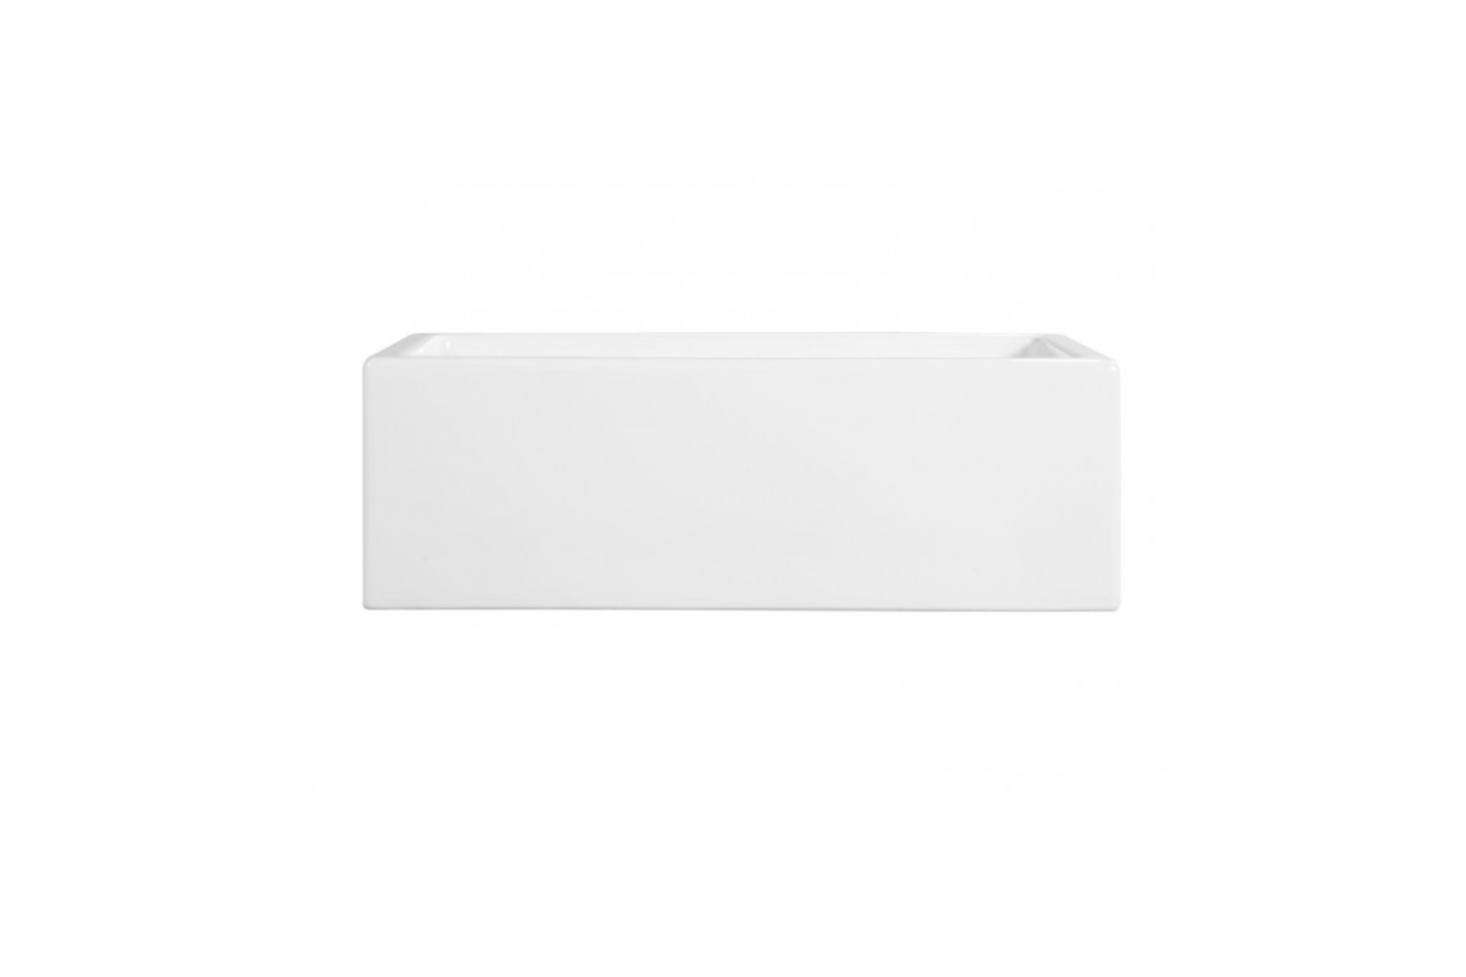 The 30-Inch Risinger Fireclay Farmhouse Sink in Smooth Apron White starts at $729 at Signature Hardware. For more see our post 10 Easy Pieces: White Kitchen Farmhouse Sinks.